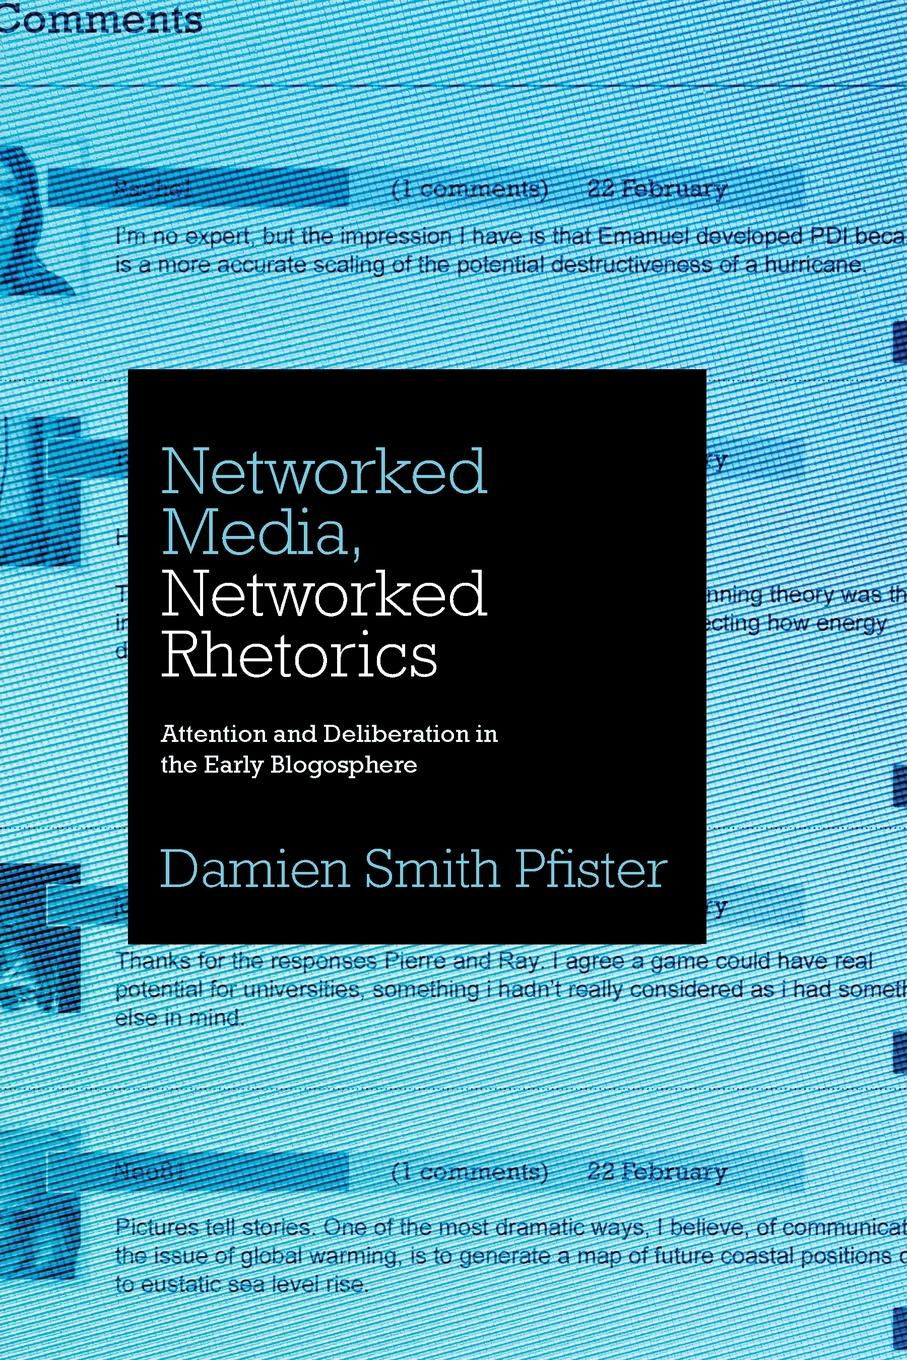 лучшая цена Damien Smith Pfister Networked Media, Networked Rhetorics. Attention and Deliberation in the Early Blogosphere